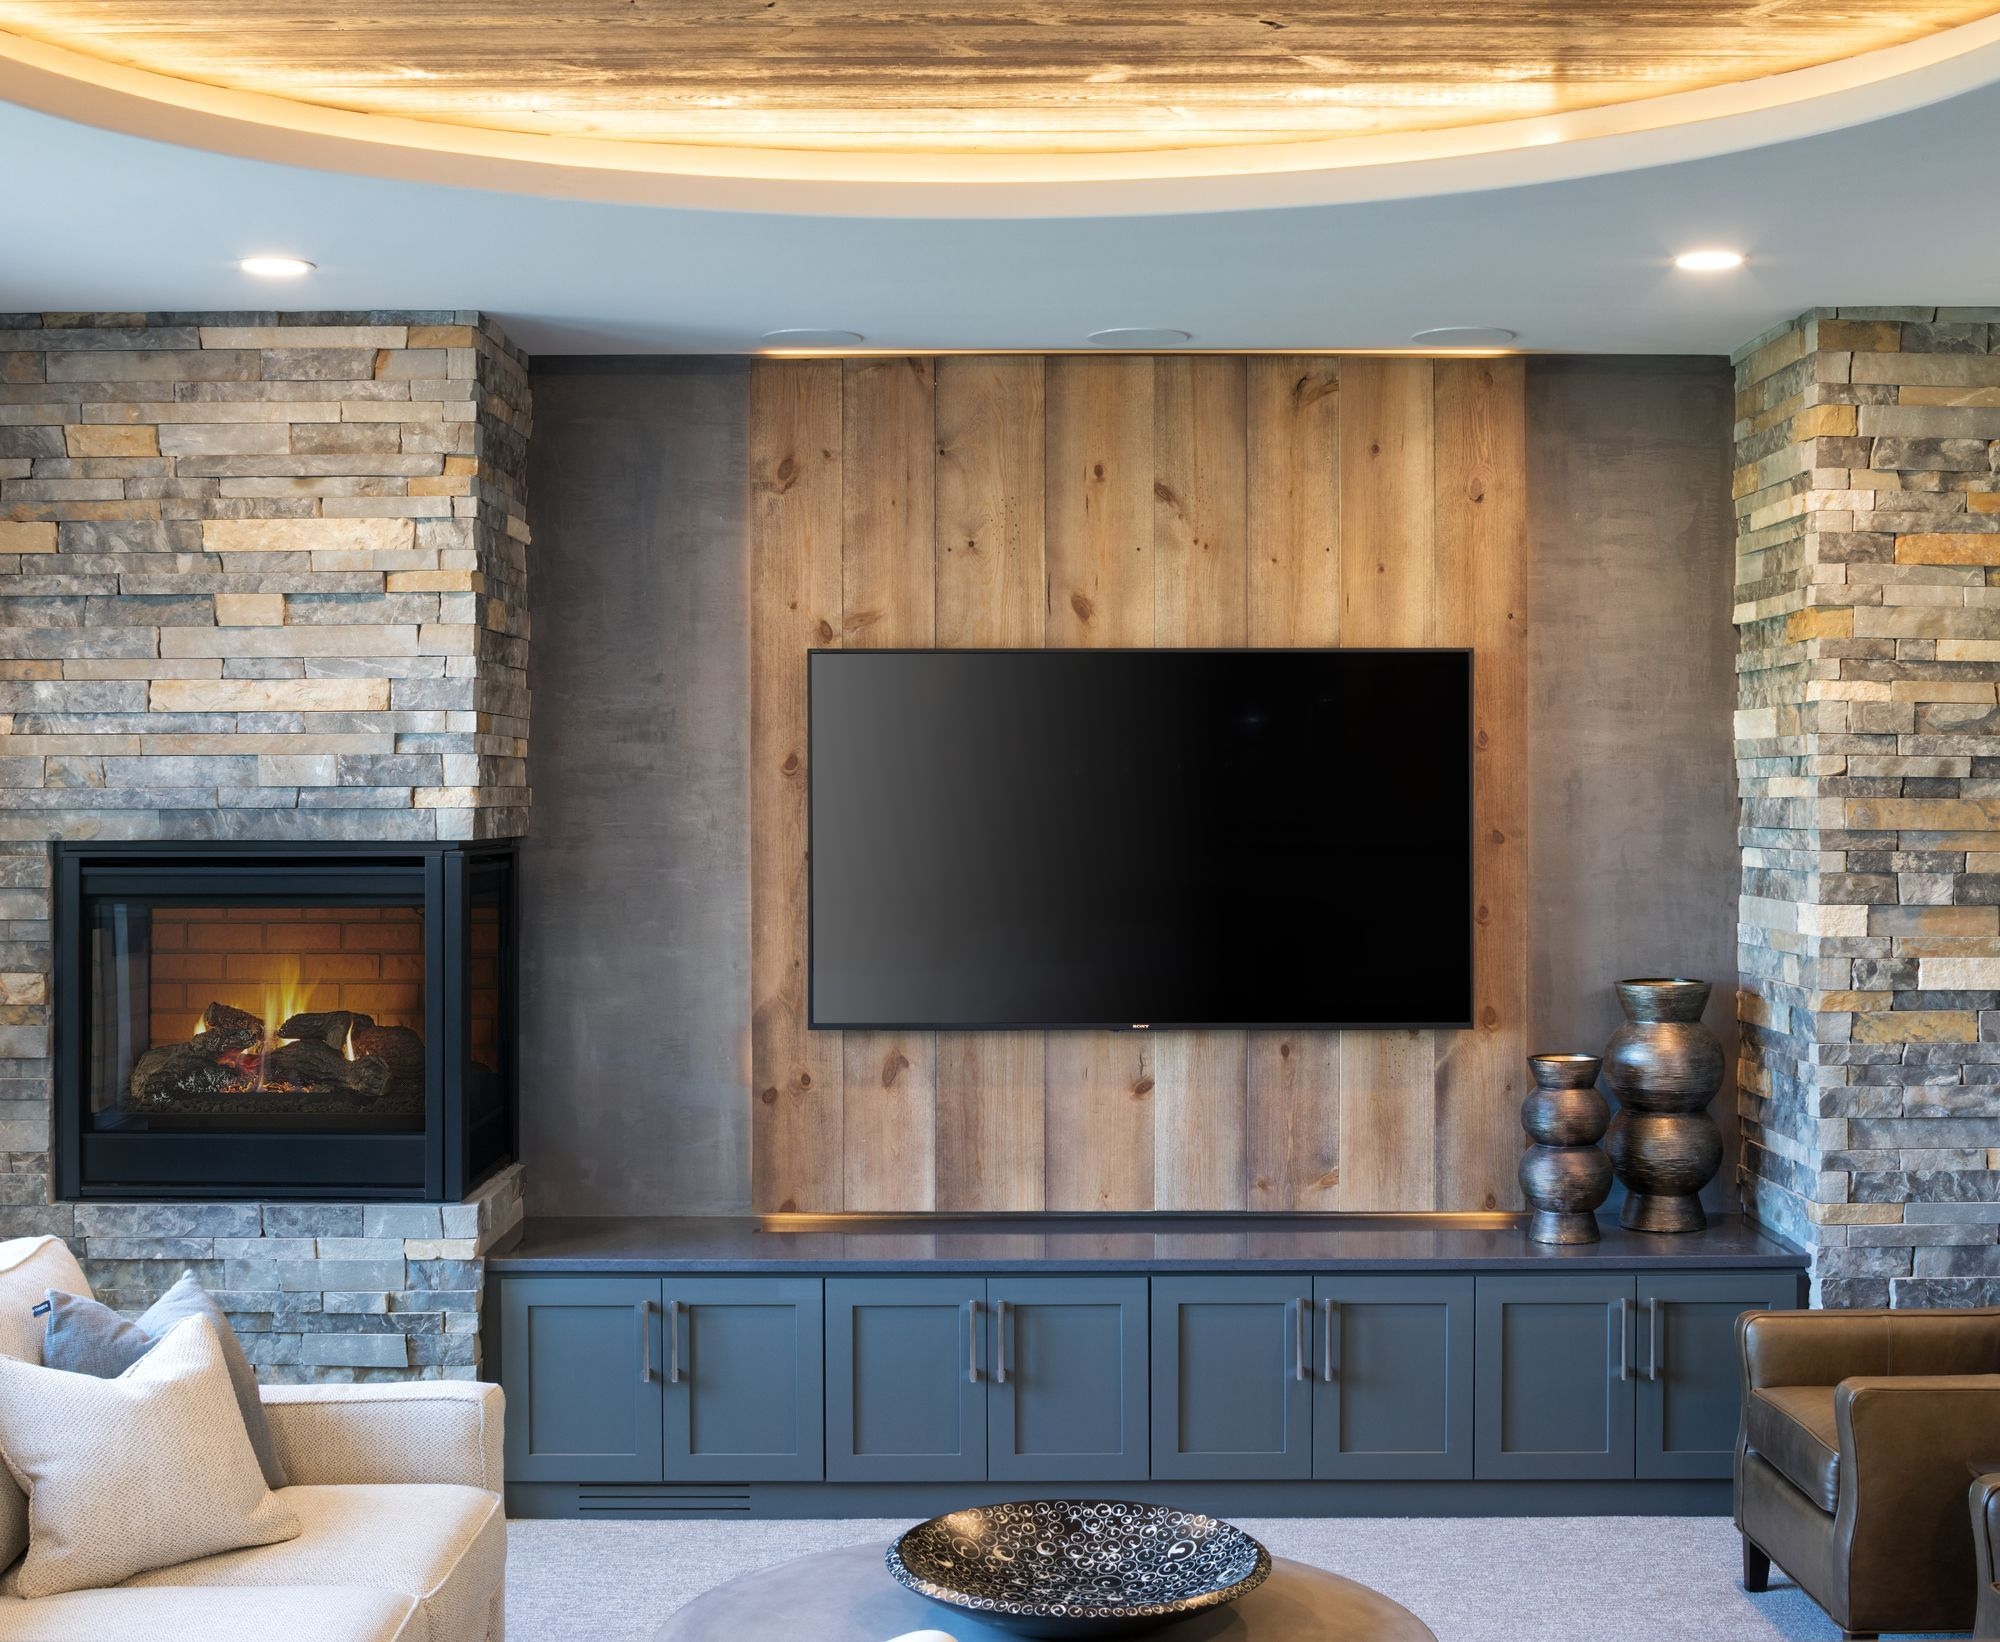 Add Warmth And Architectural Interest To Your Space And Enjoy The Power Of Fire In Creative New Ways With Heat Corner Gas Fireplace Home Vented Gas Fireplace